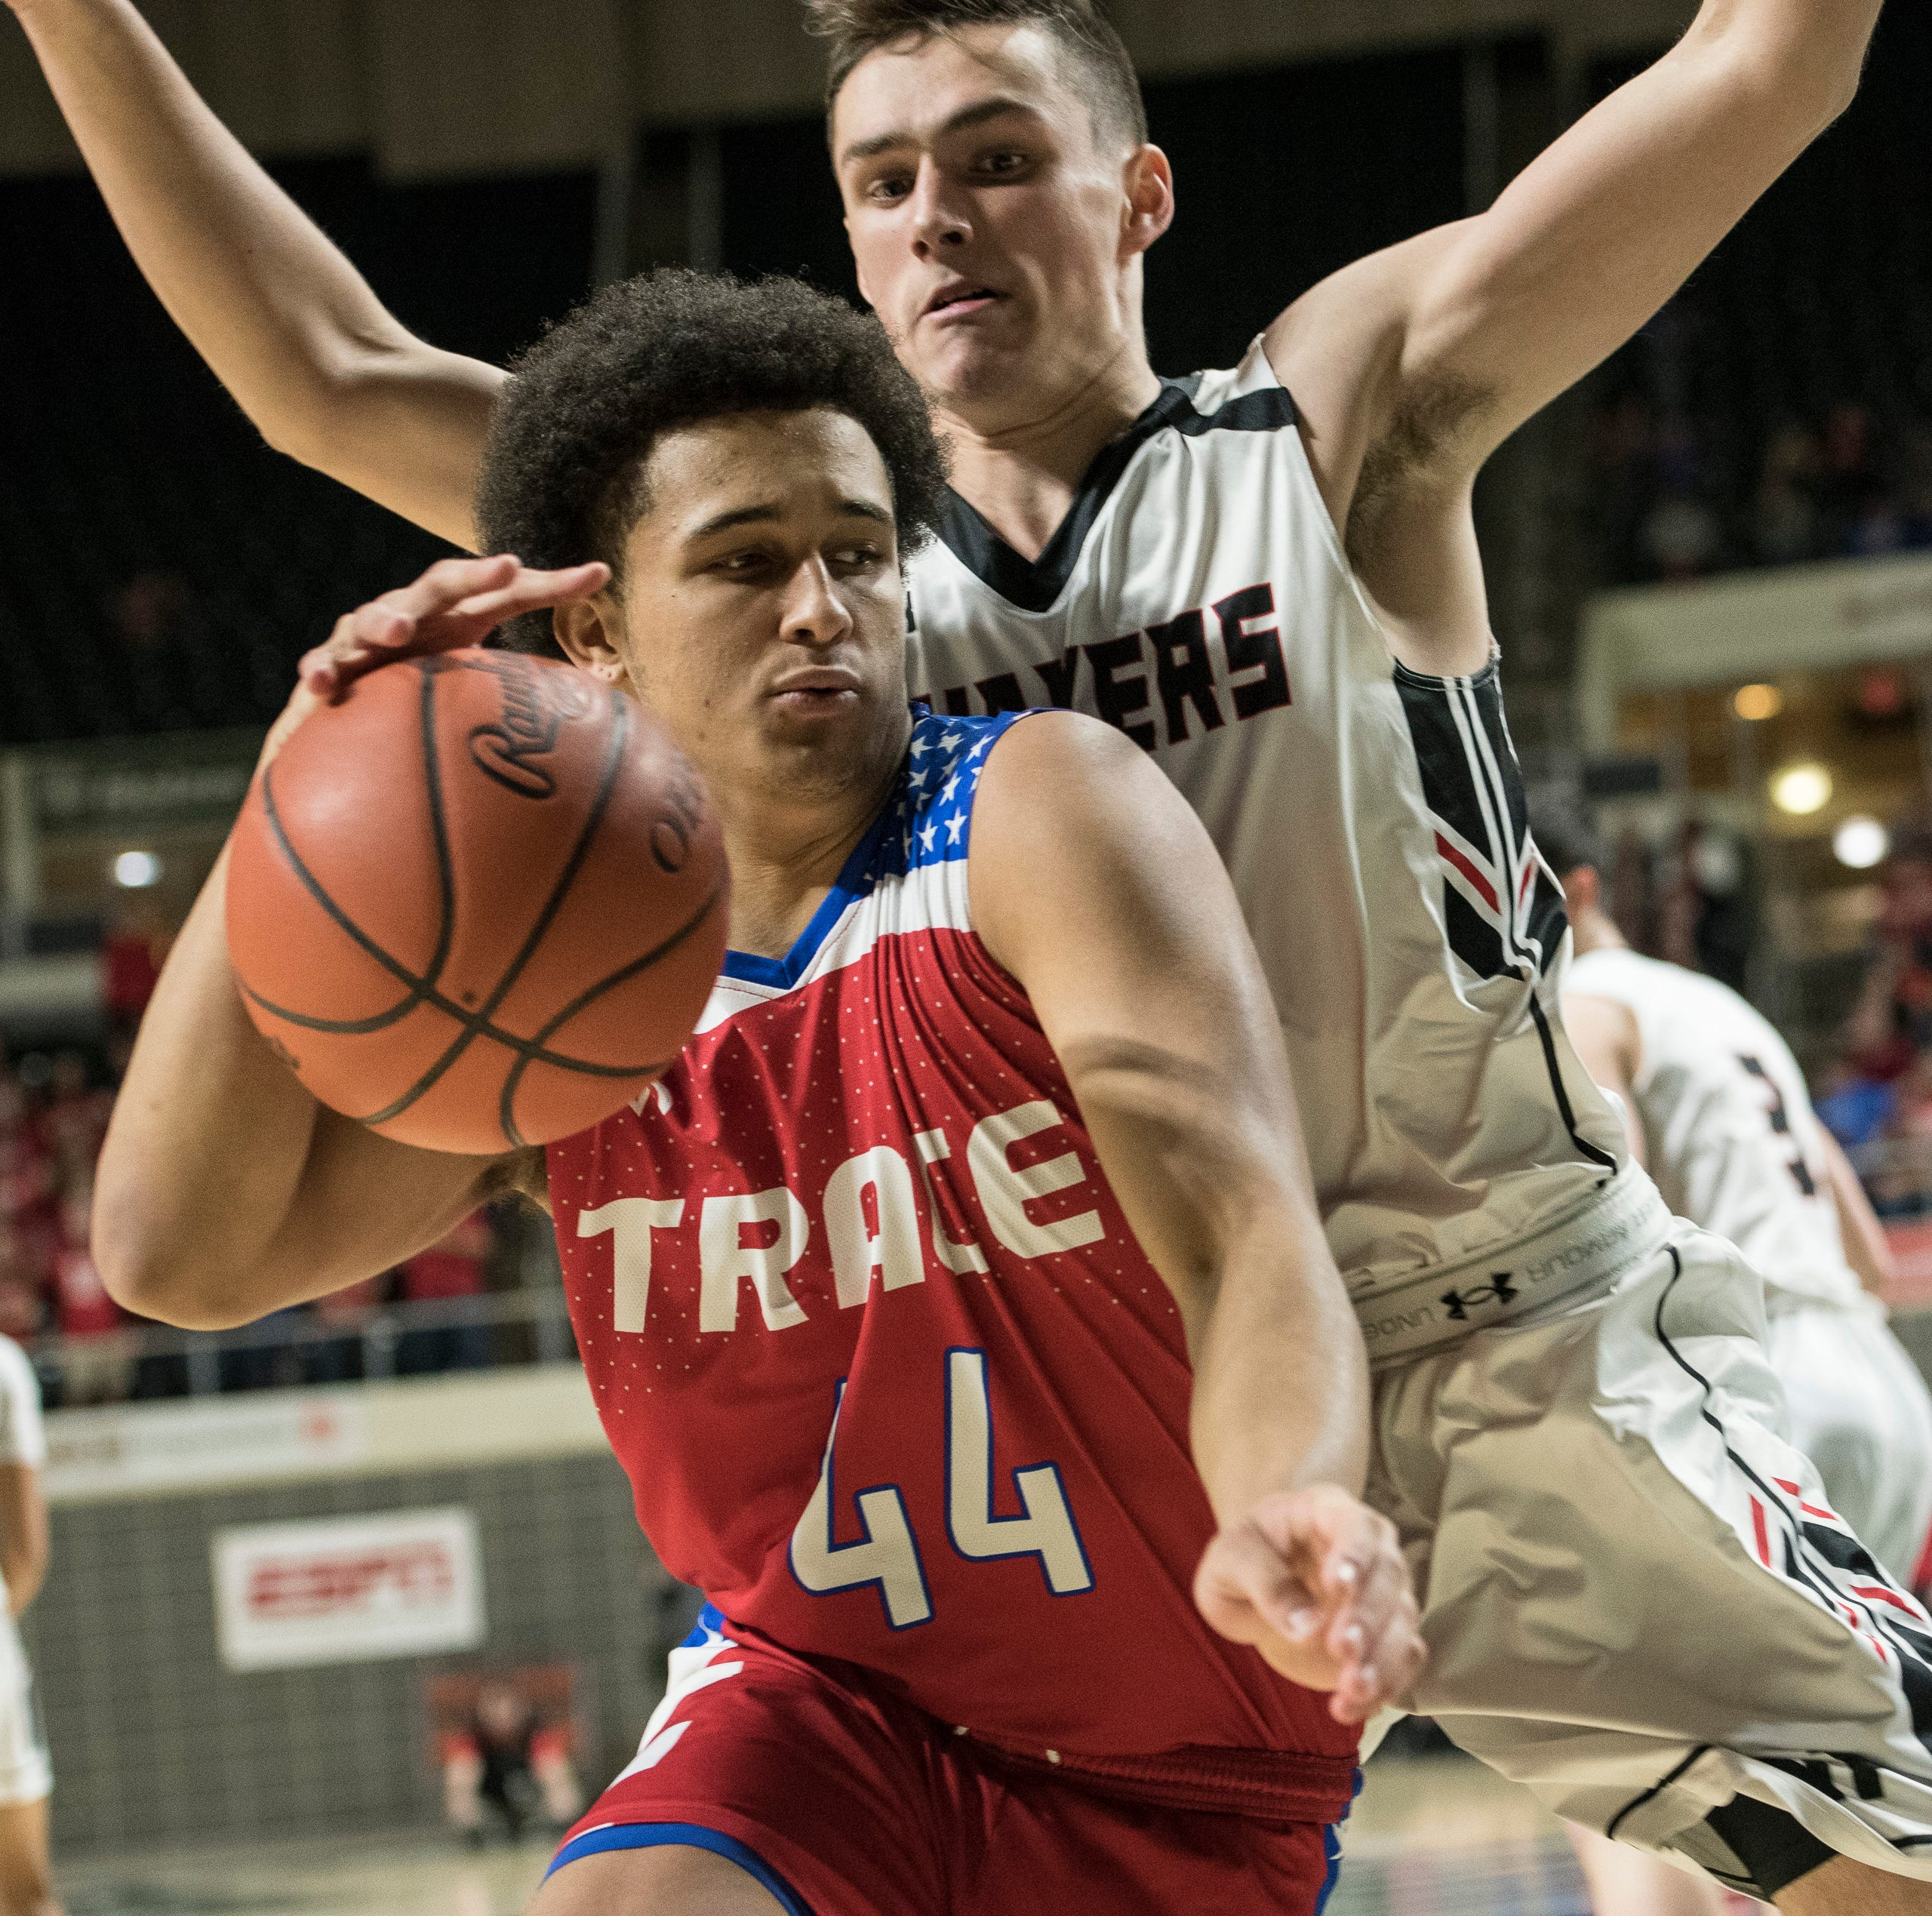 OHIO HS BOYS BASKETBALL: Zane Trace falls to New Philadelphia in regional semifinal